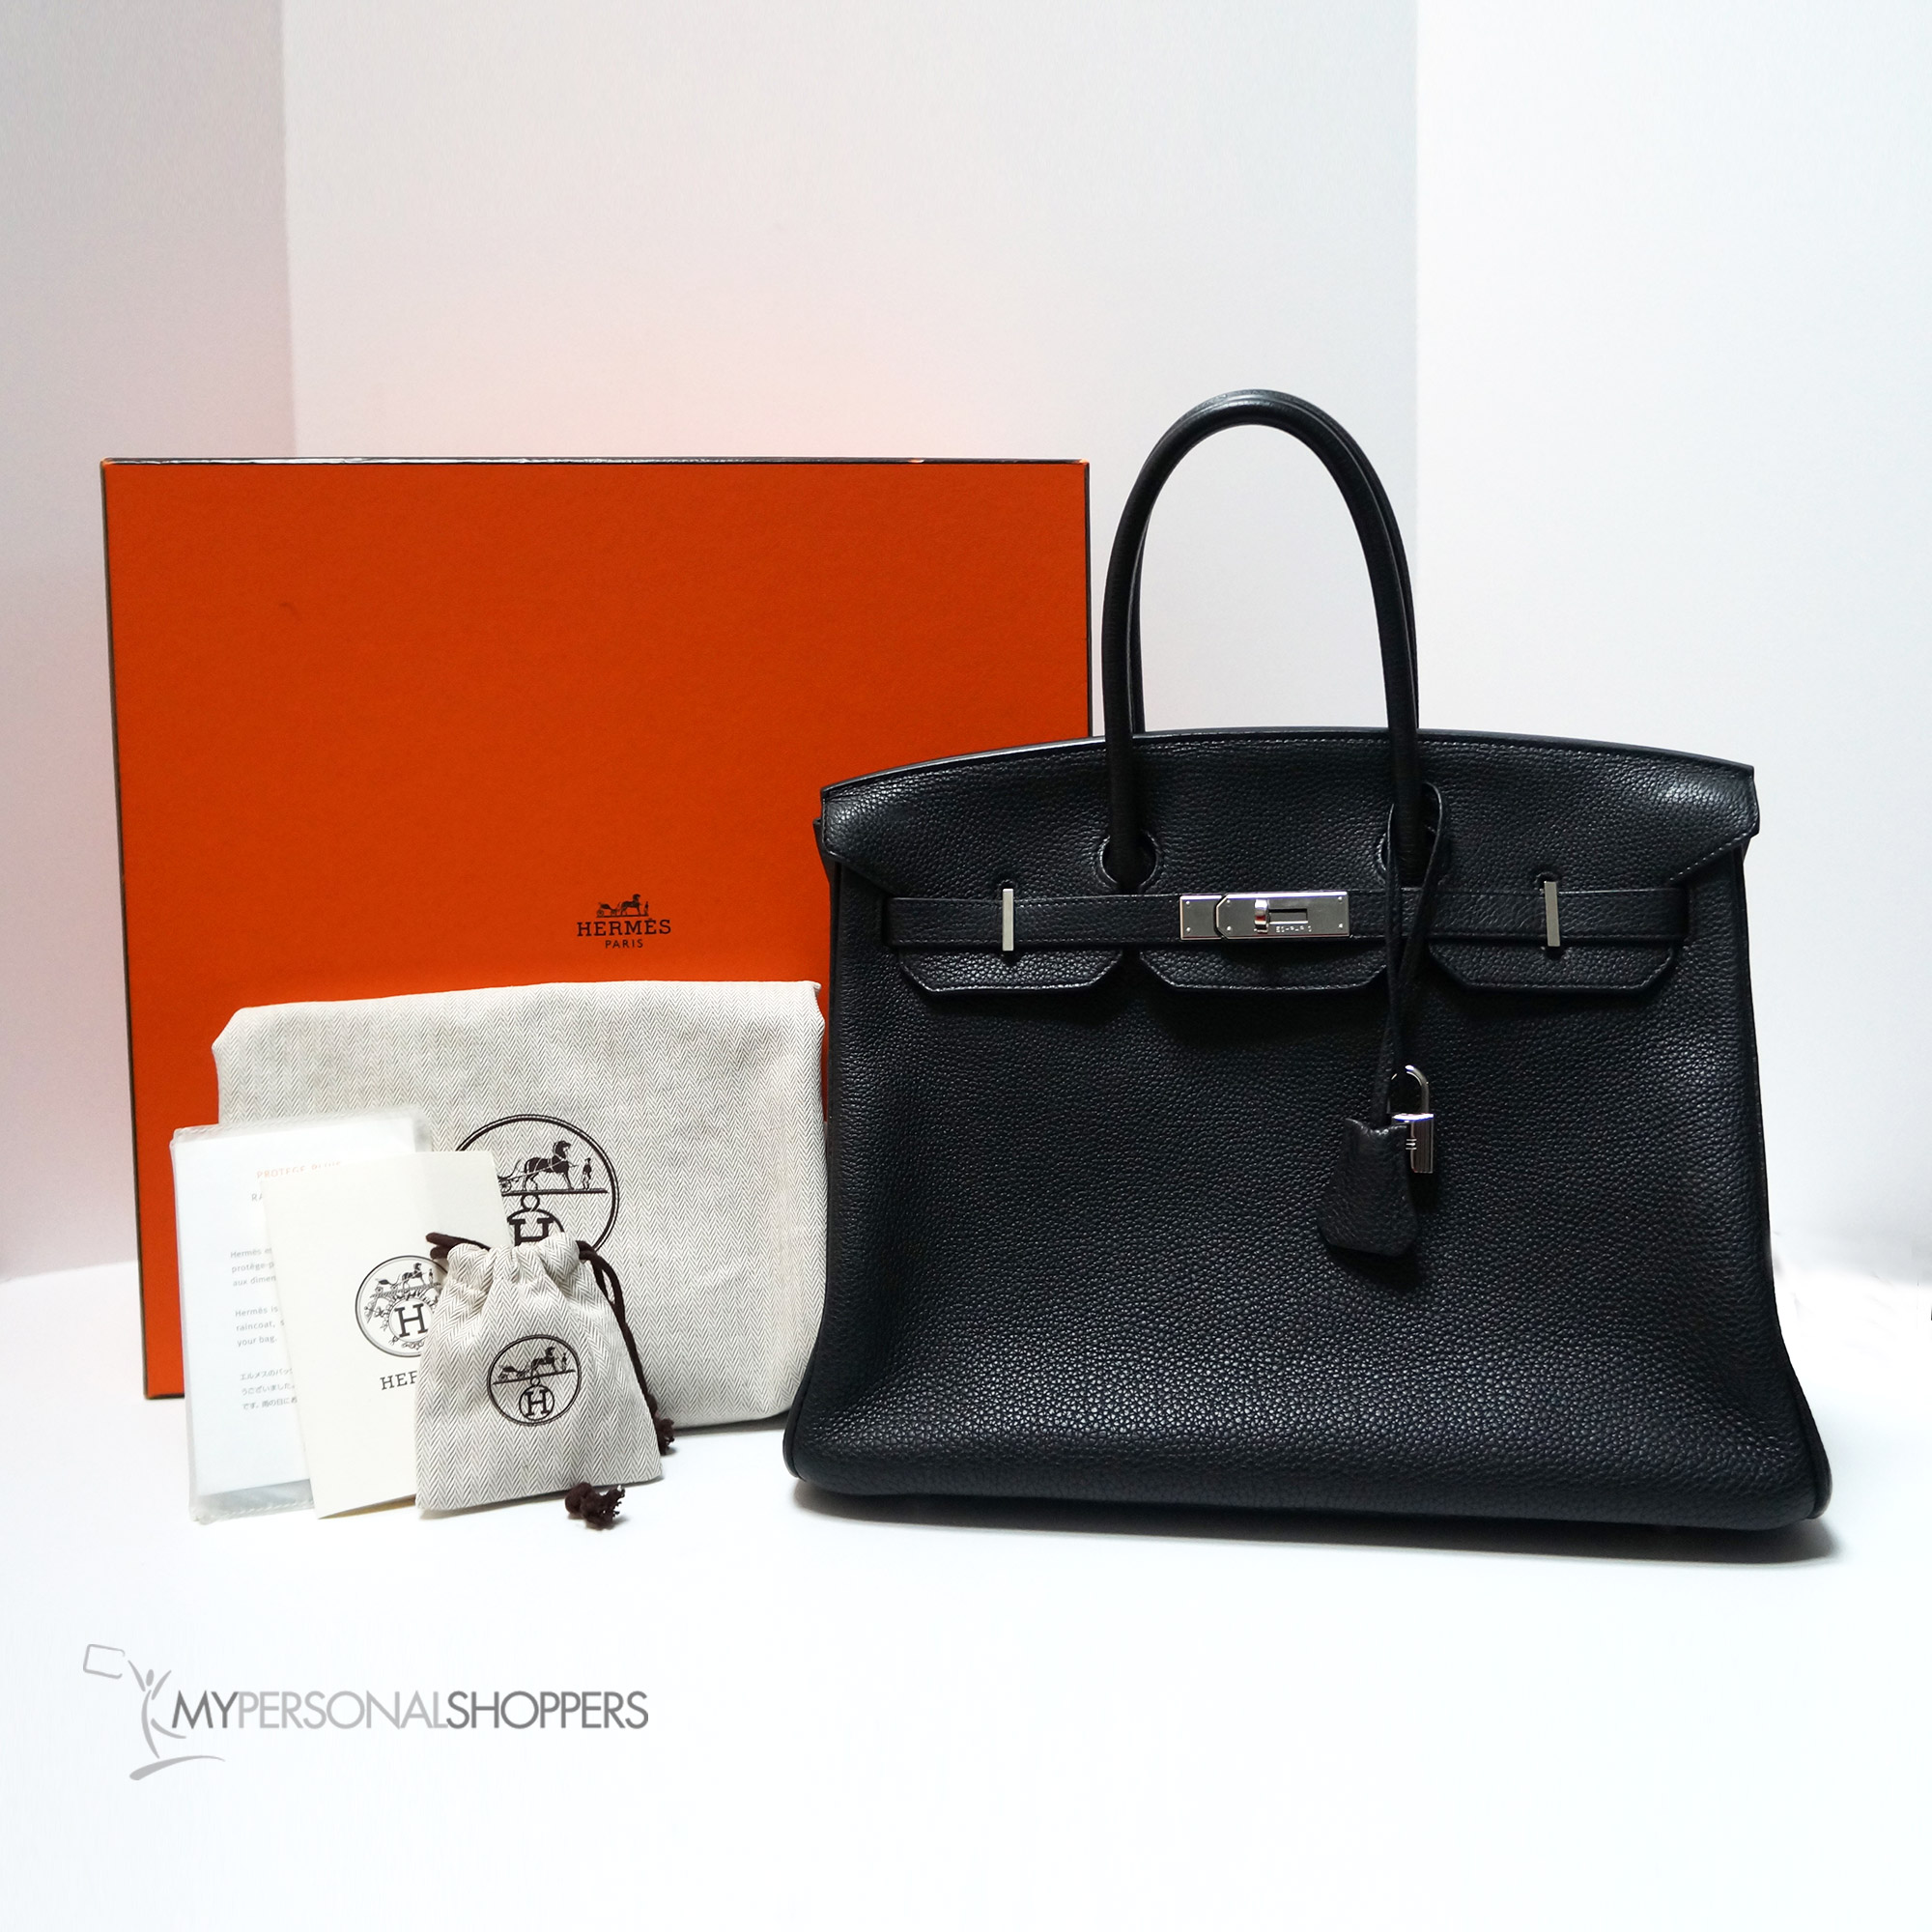 6329902b34 Hermes Black Togo Leather Palladium Hardware Birkin 35cm Bag